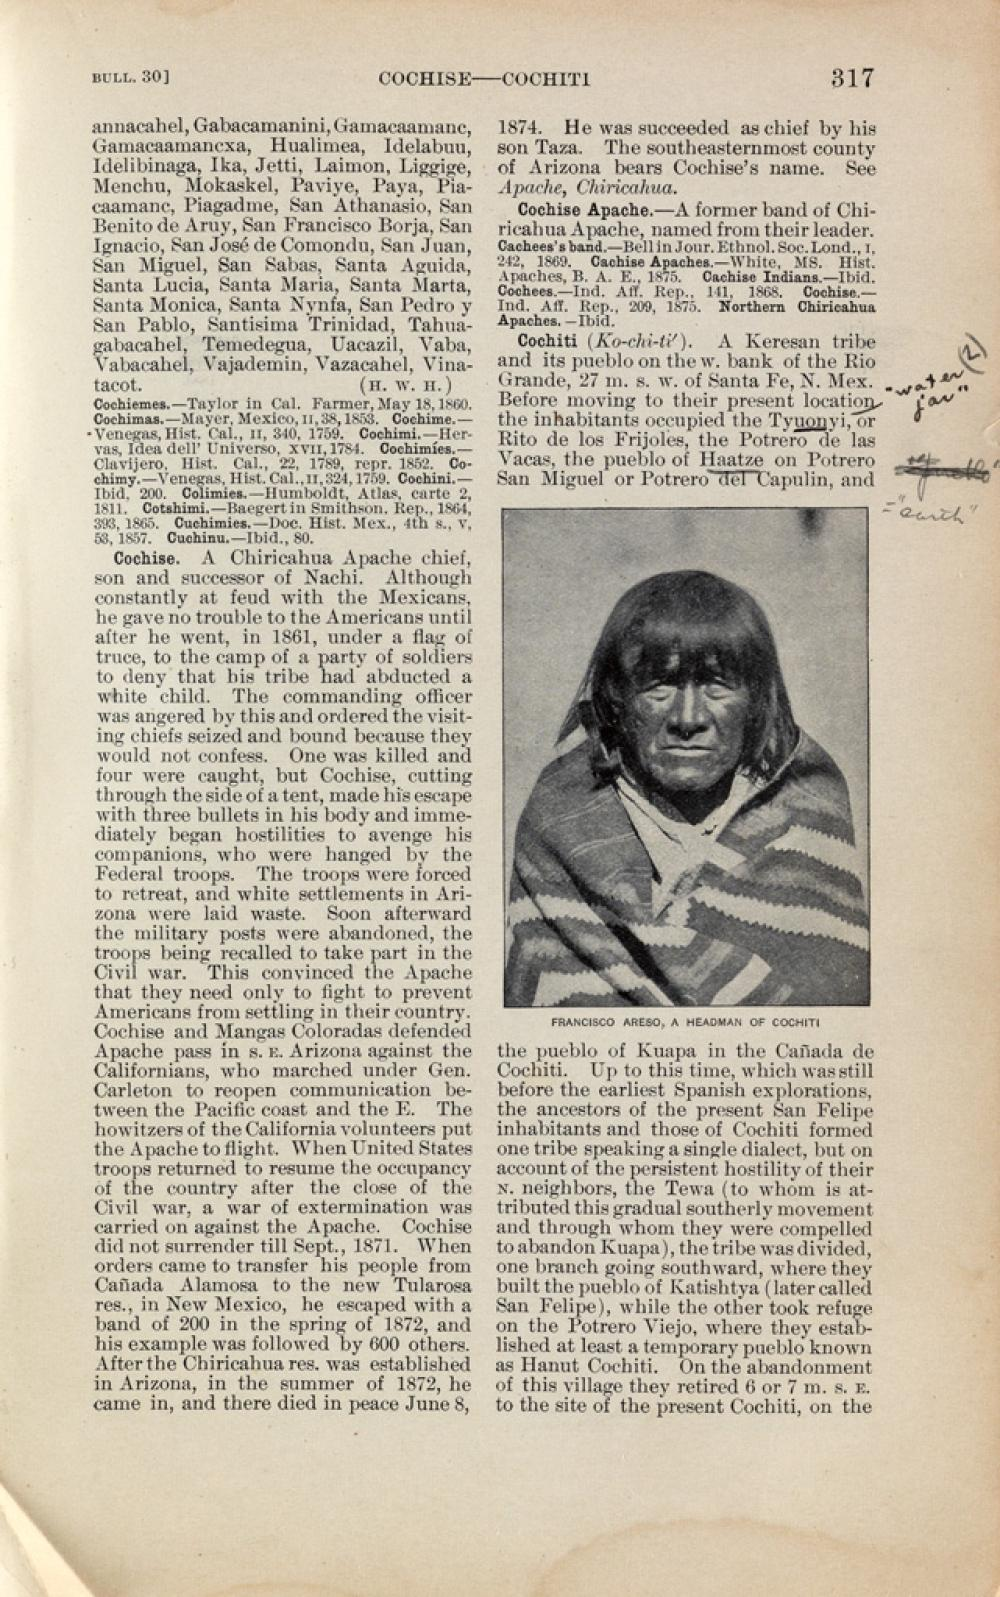 (EDWARD S. CURTIS.) Handbook of American Indians, Part 1, A-M, Bulletin #30 * Handbook of American Indians, Part 2, N-Z, Bulletin #30,